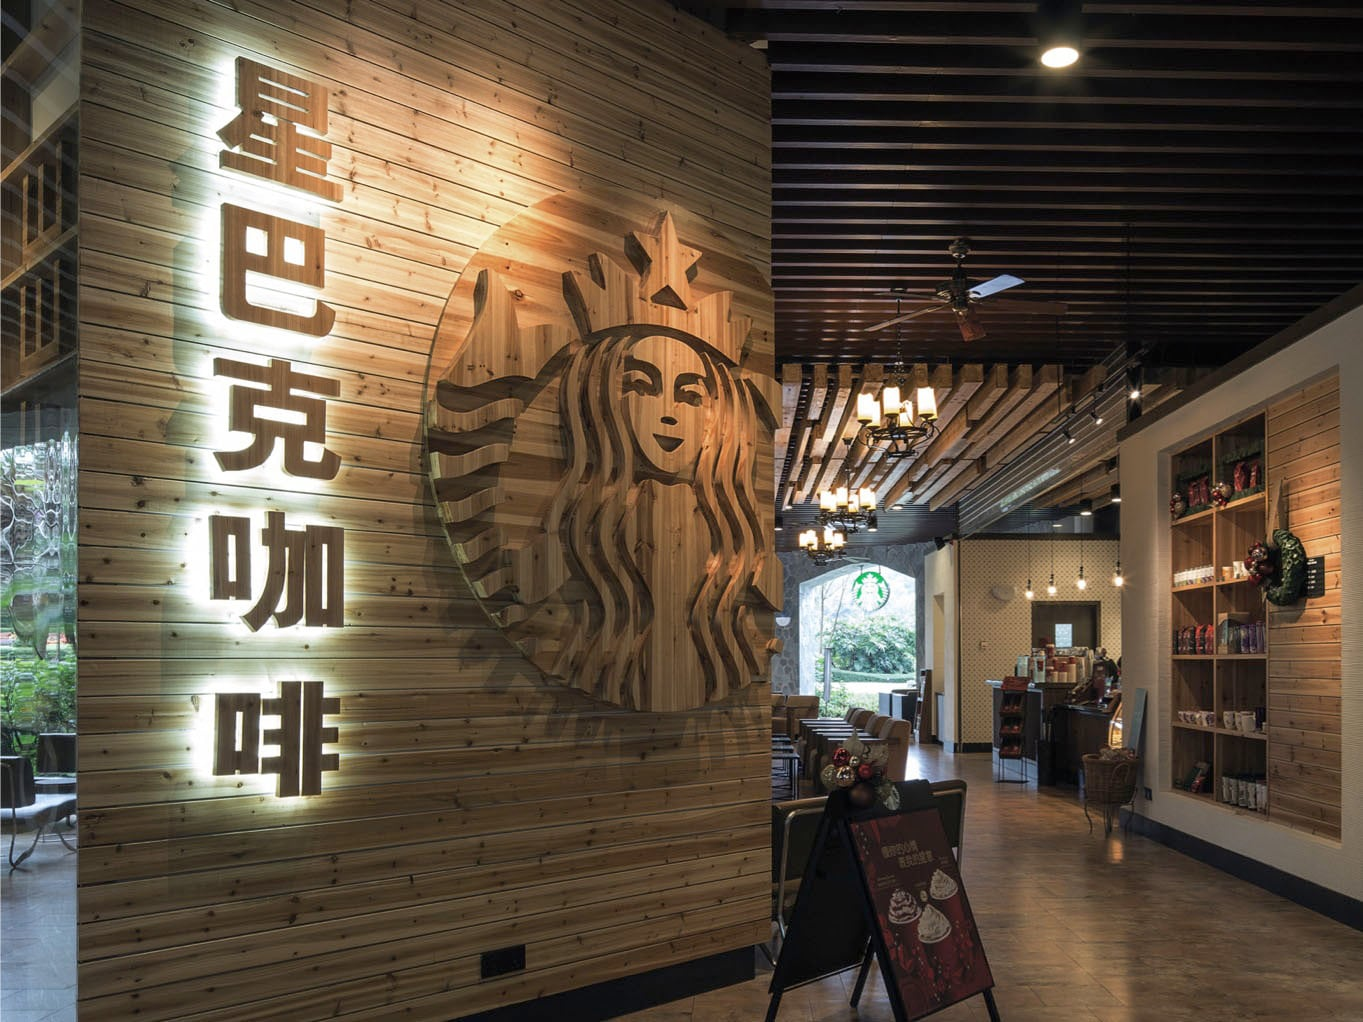 Entrance of Starbucks store in China